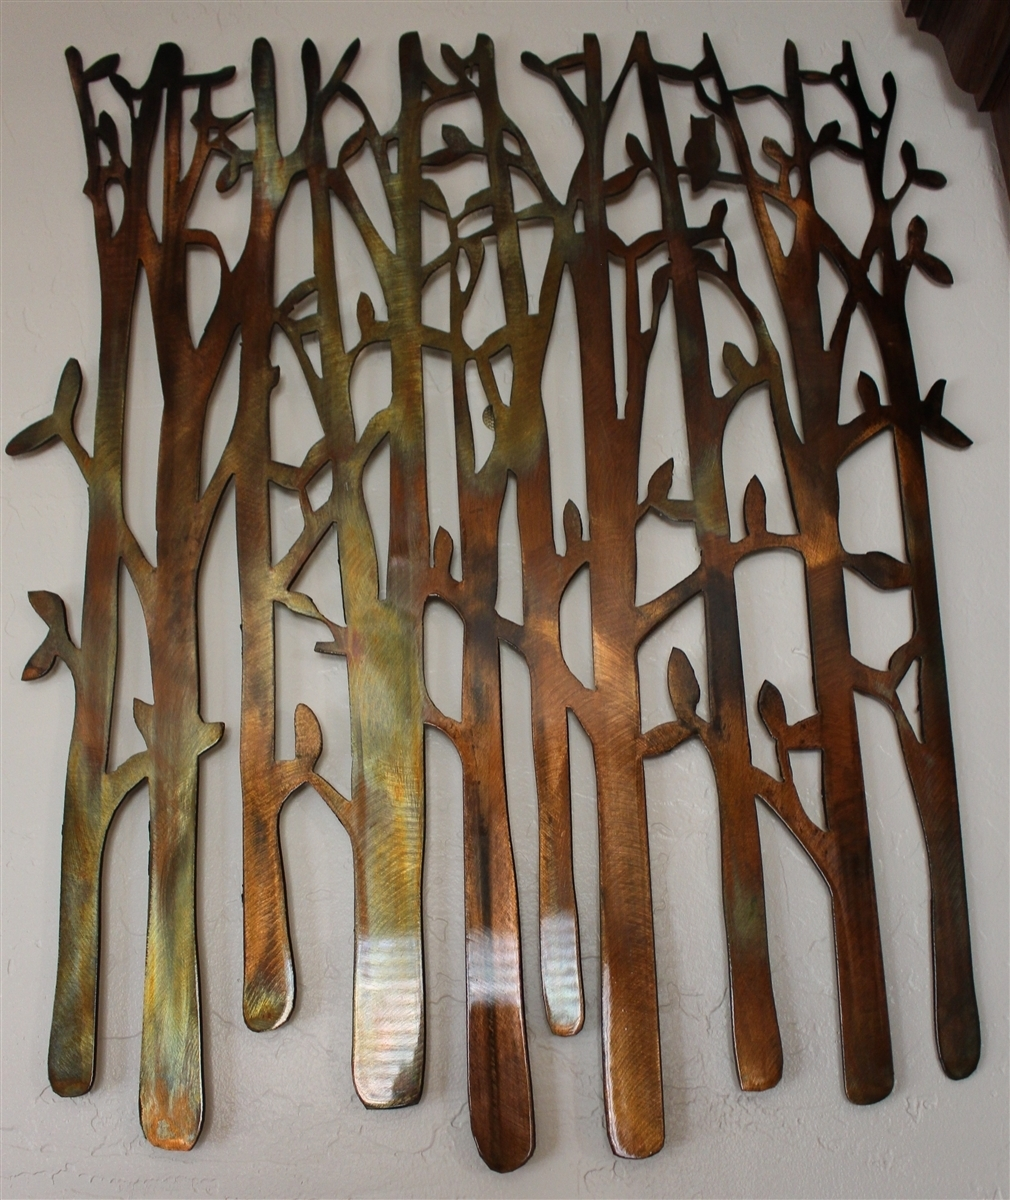 Metal Tree With Birds Wall Art – Blogtipsworld Throughout Most Recently Released Metal Tree Wall Art (View 14 of 15)